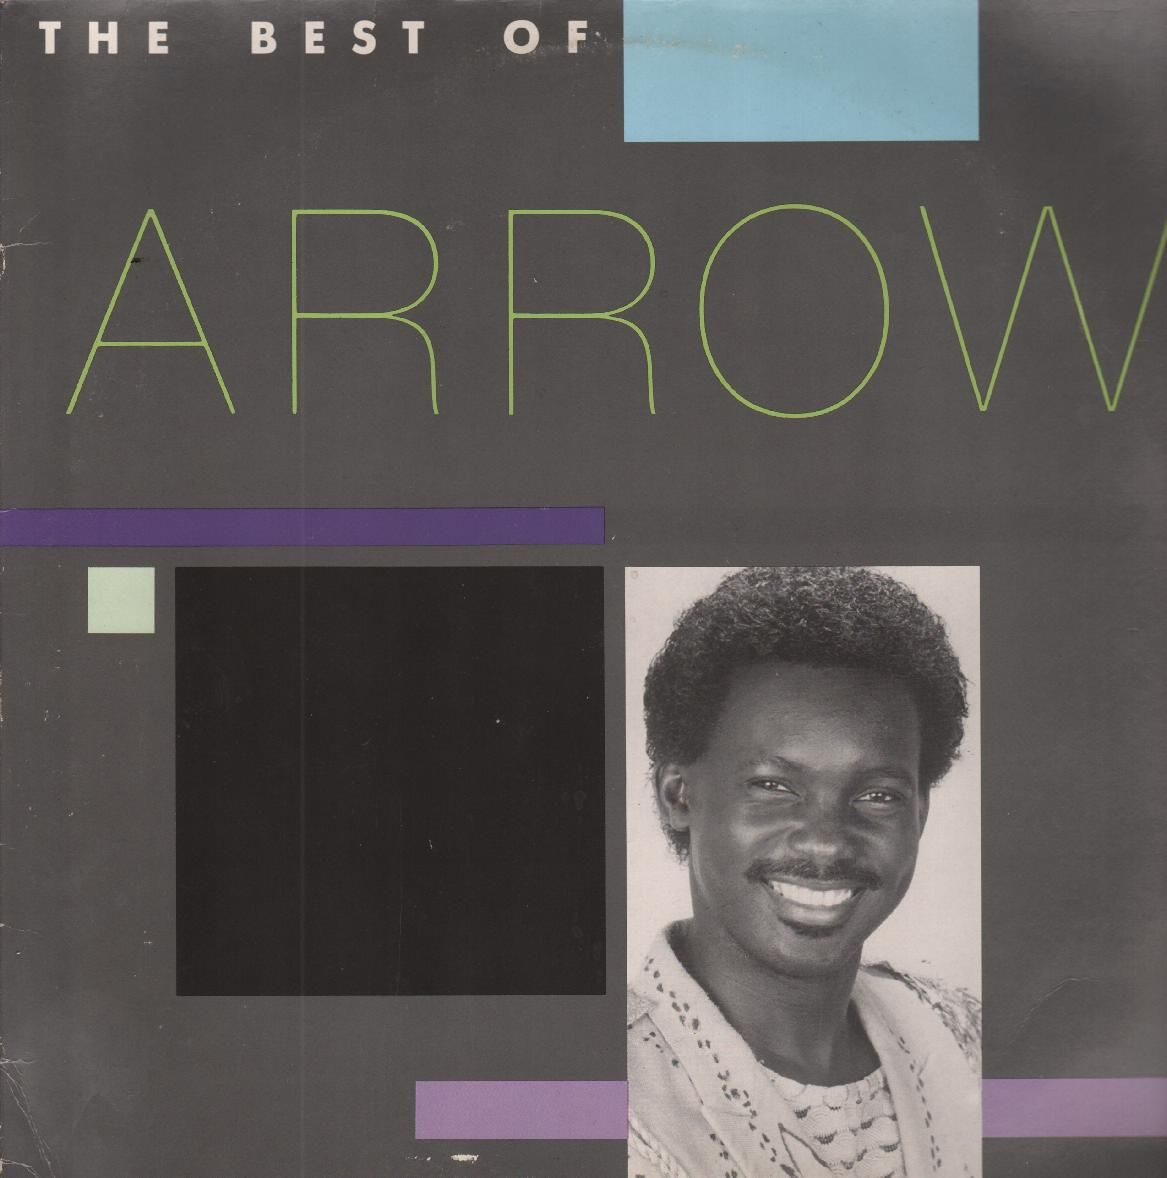 Arrow - Best of Arrow Cover